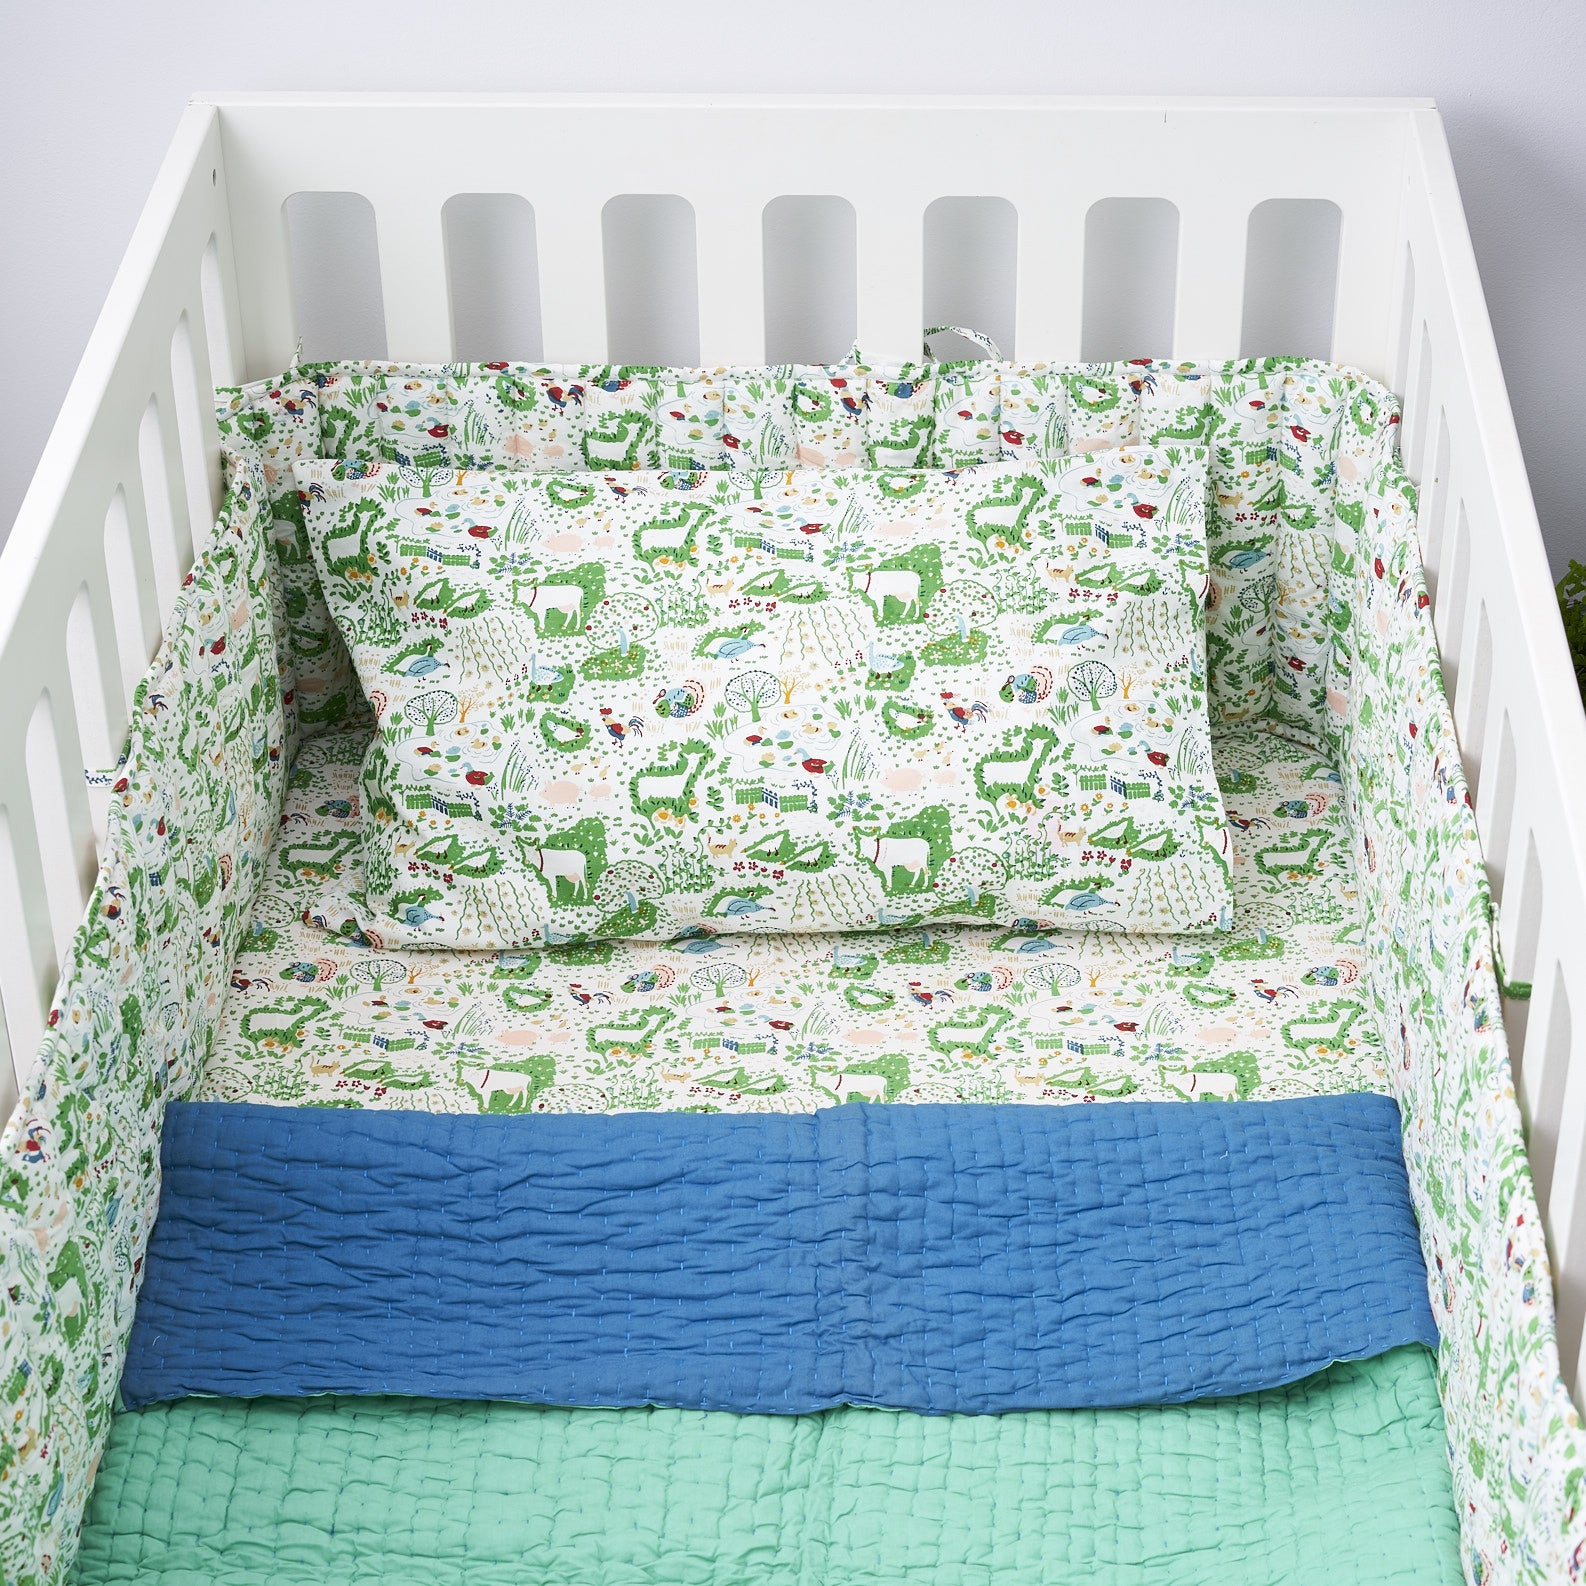 Farm yard cot bed bumper